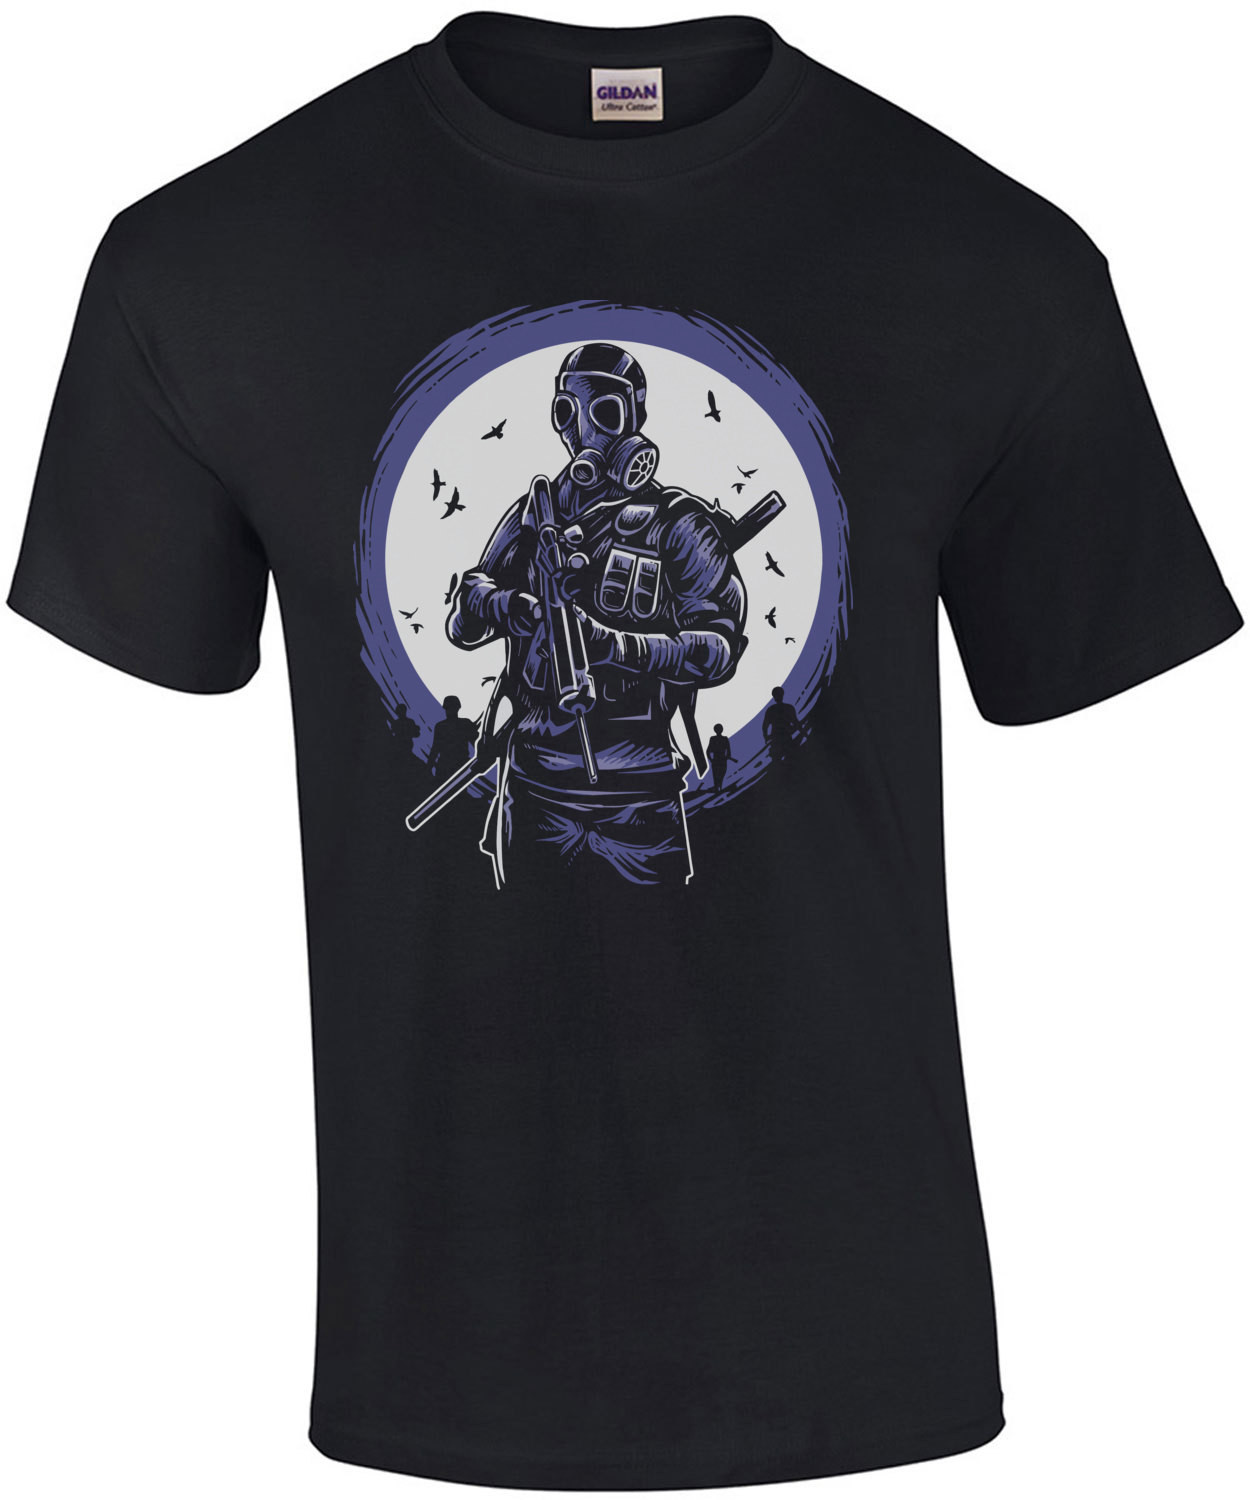 Apocalyptic Soldier Spooky T-Shirt